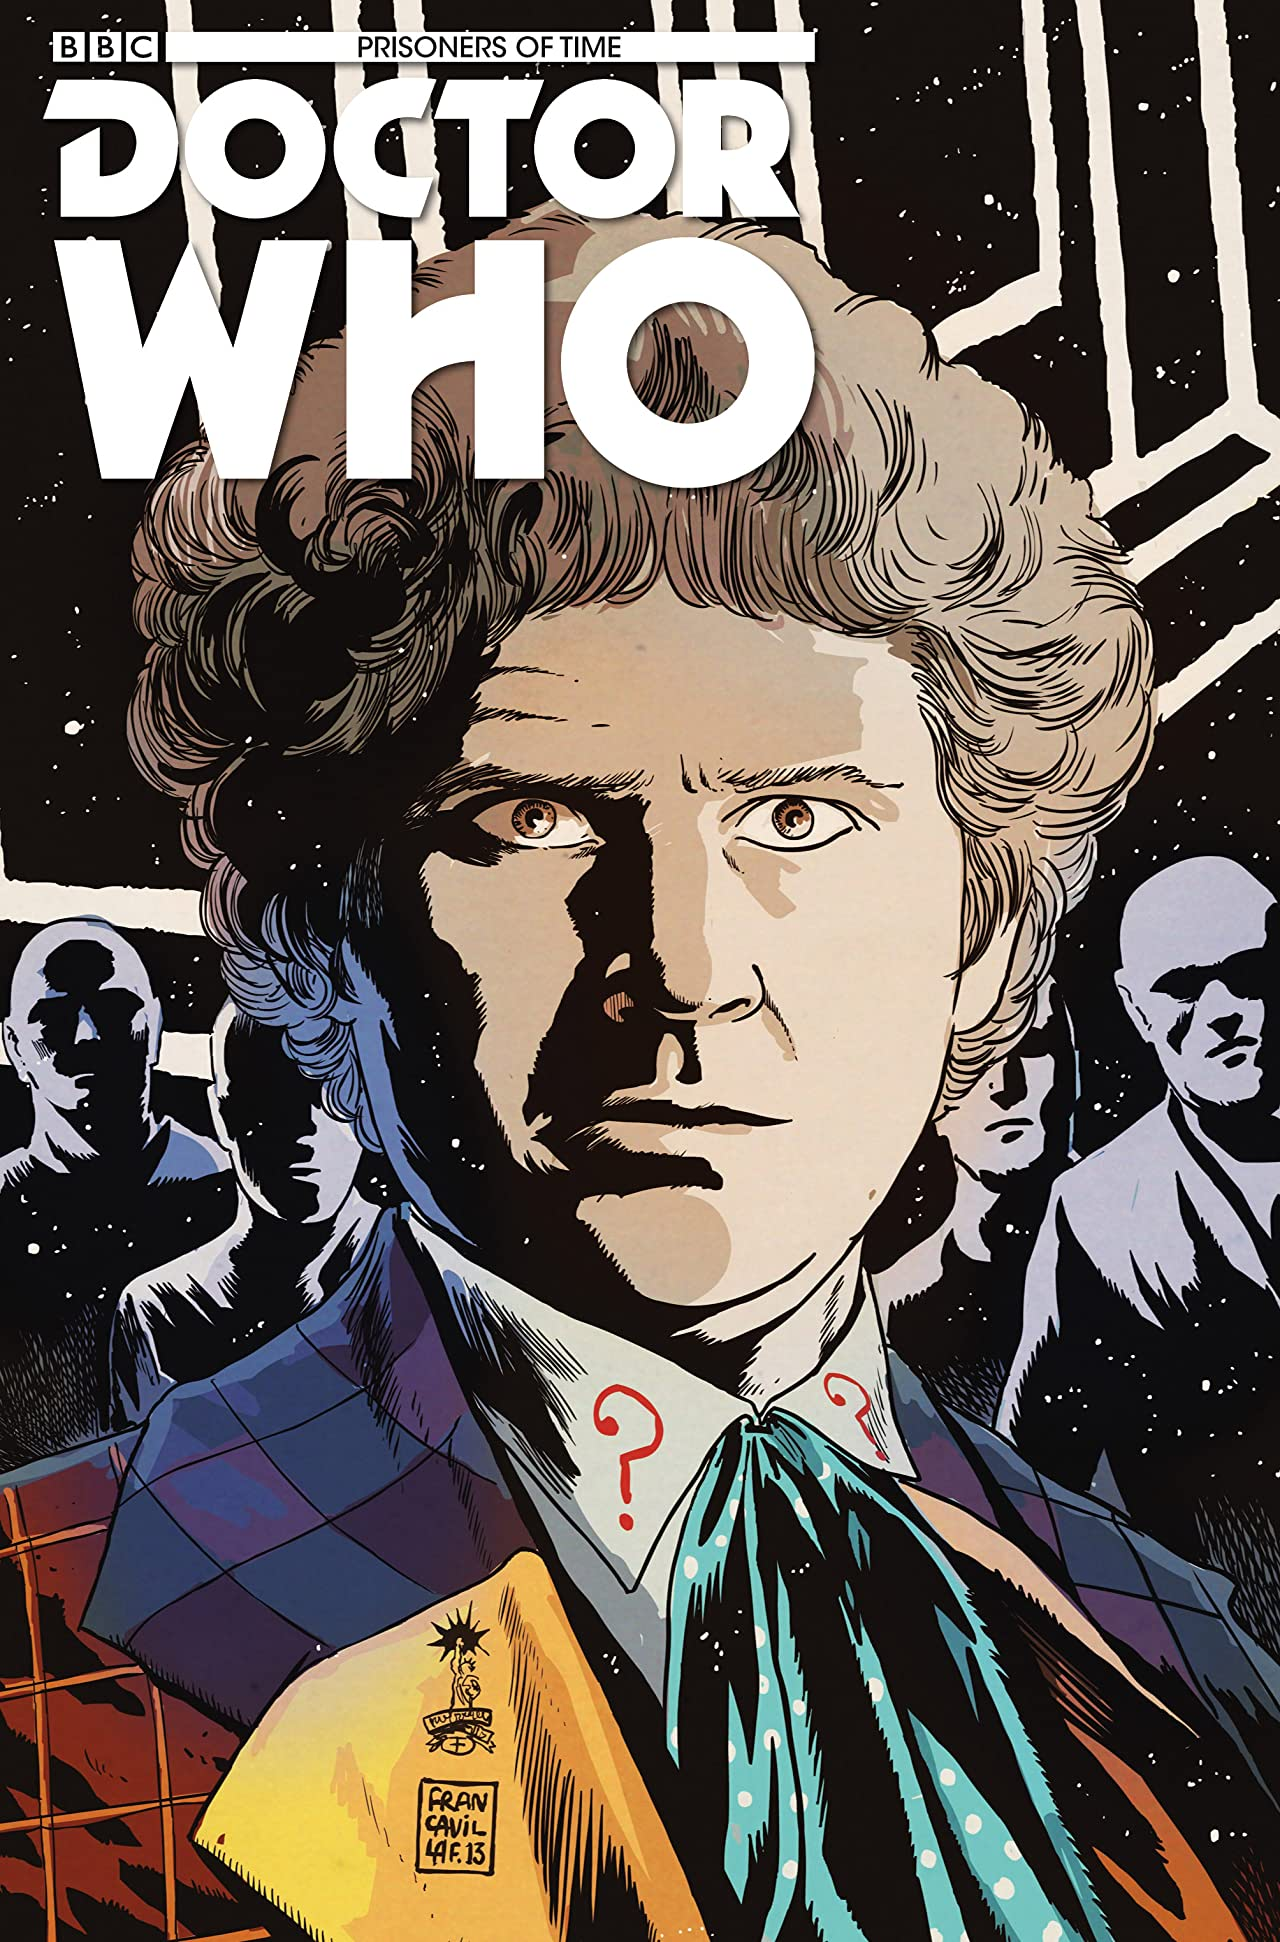 Doctor Who: Prisoners of Time #6